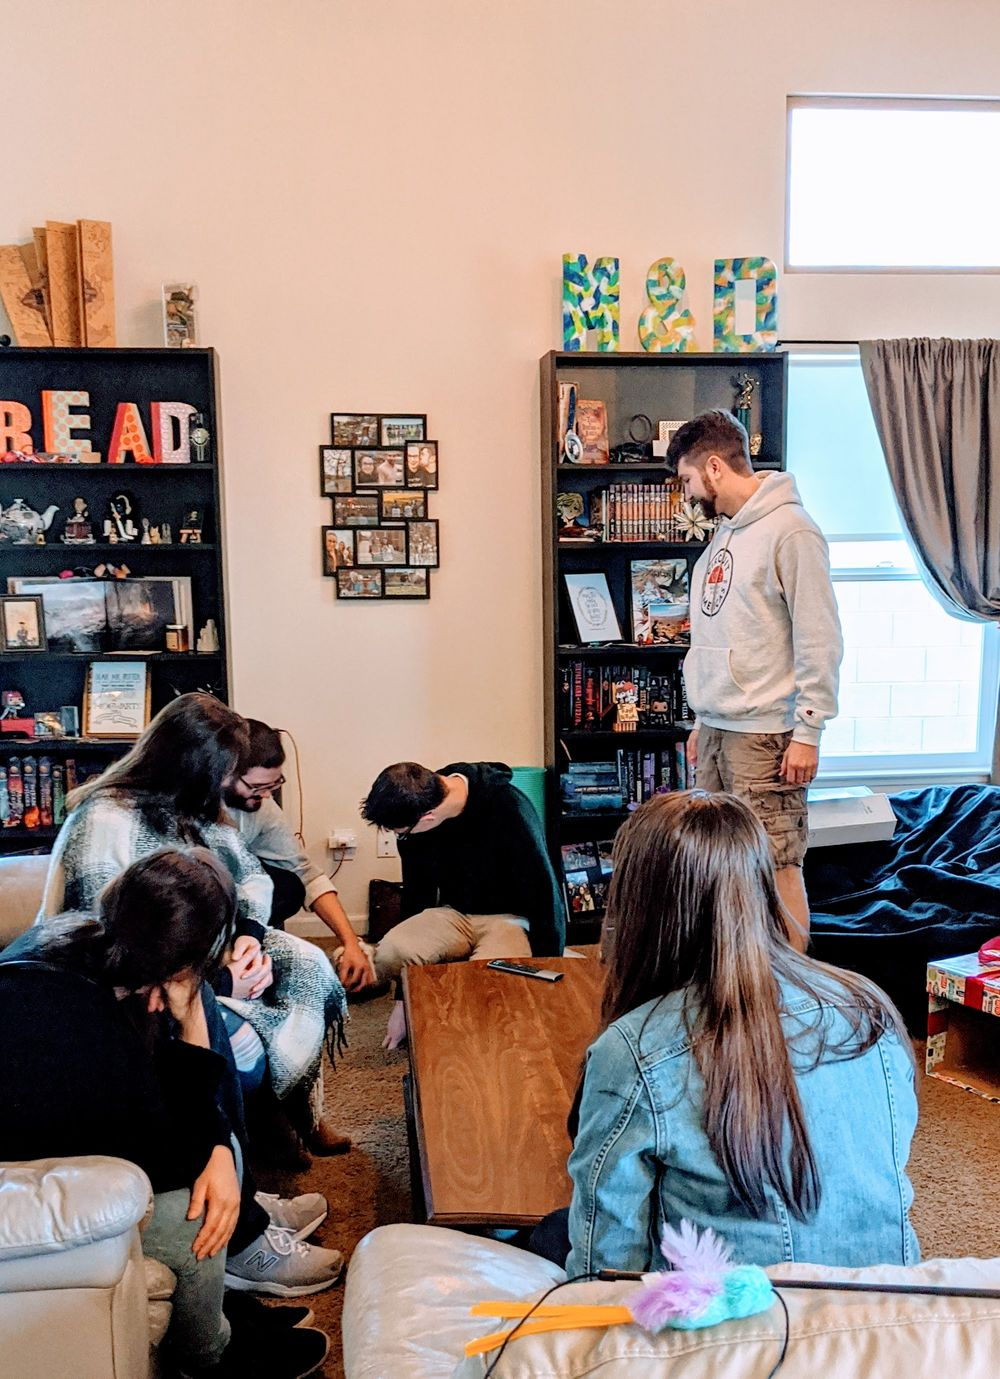 a group of friends and family in a living room